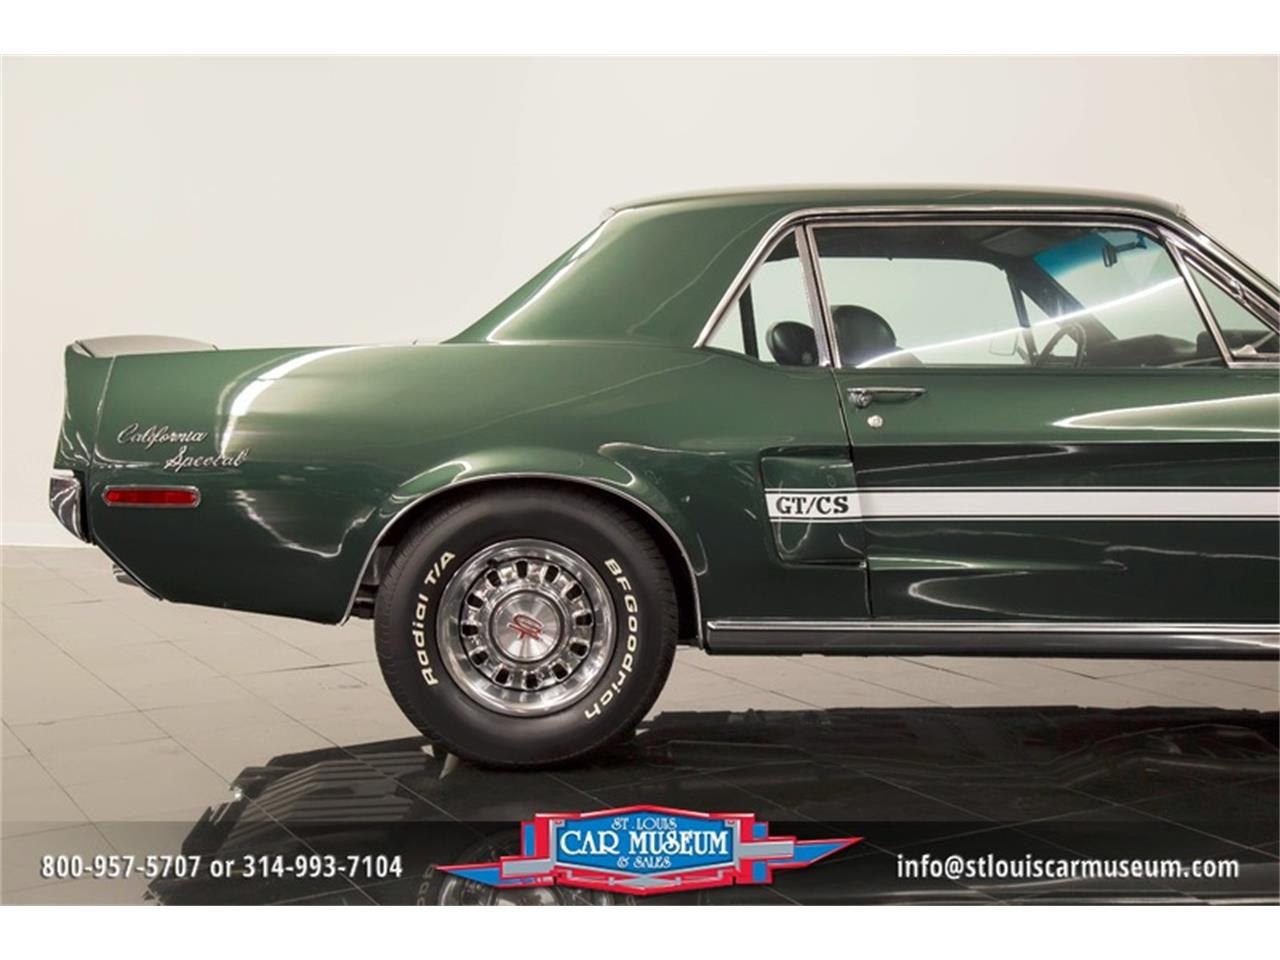 Large Picture of '68 Mustang GT/CS (California Special) - $59,900.00 Offered by St. Louis Car Museum - LWVZ